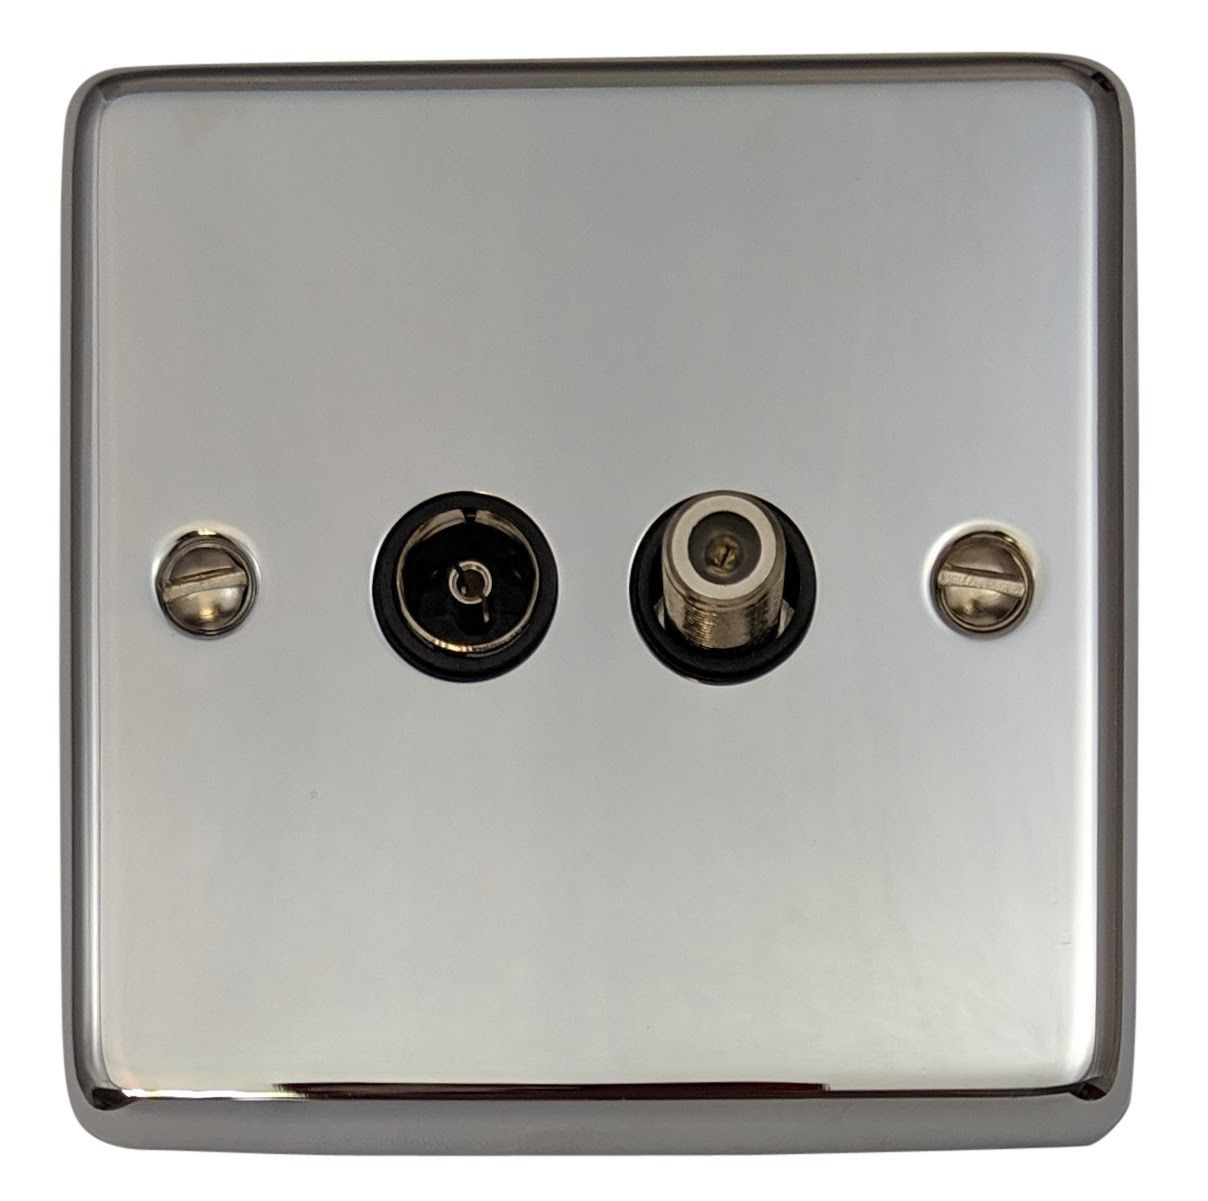 G&H CC38B Standard Plate Polished Chrome 1 Gang TV Coax & Satellite Socket Point